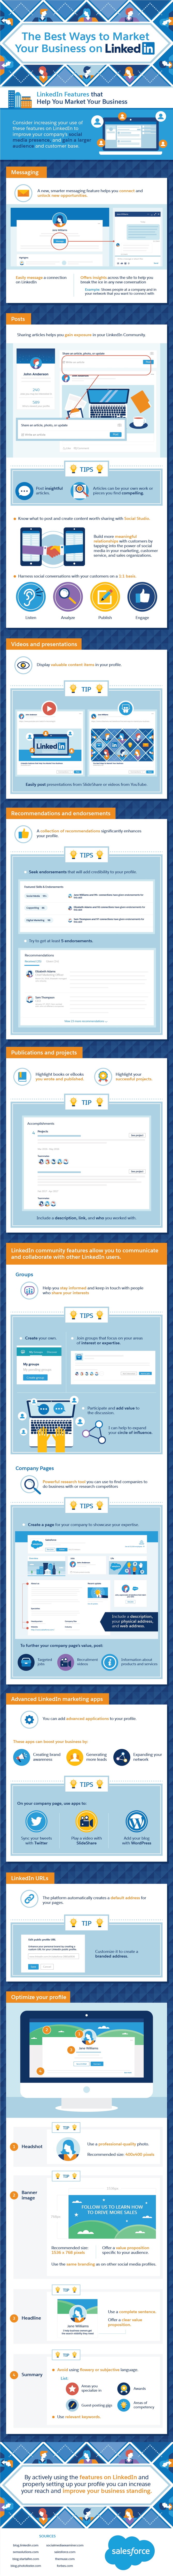 market your business on linkedin infographic